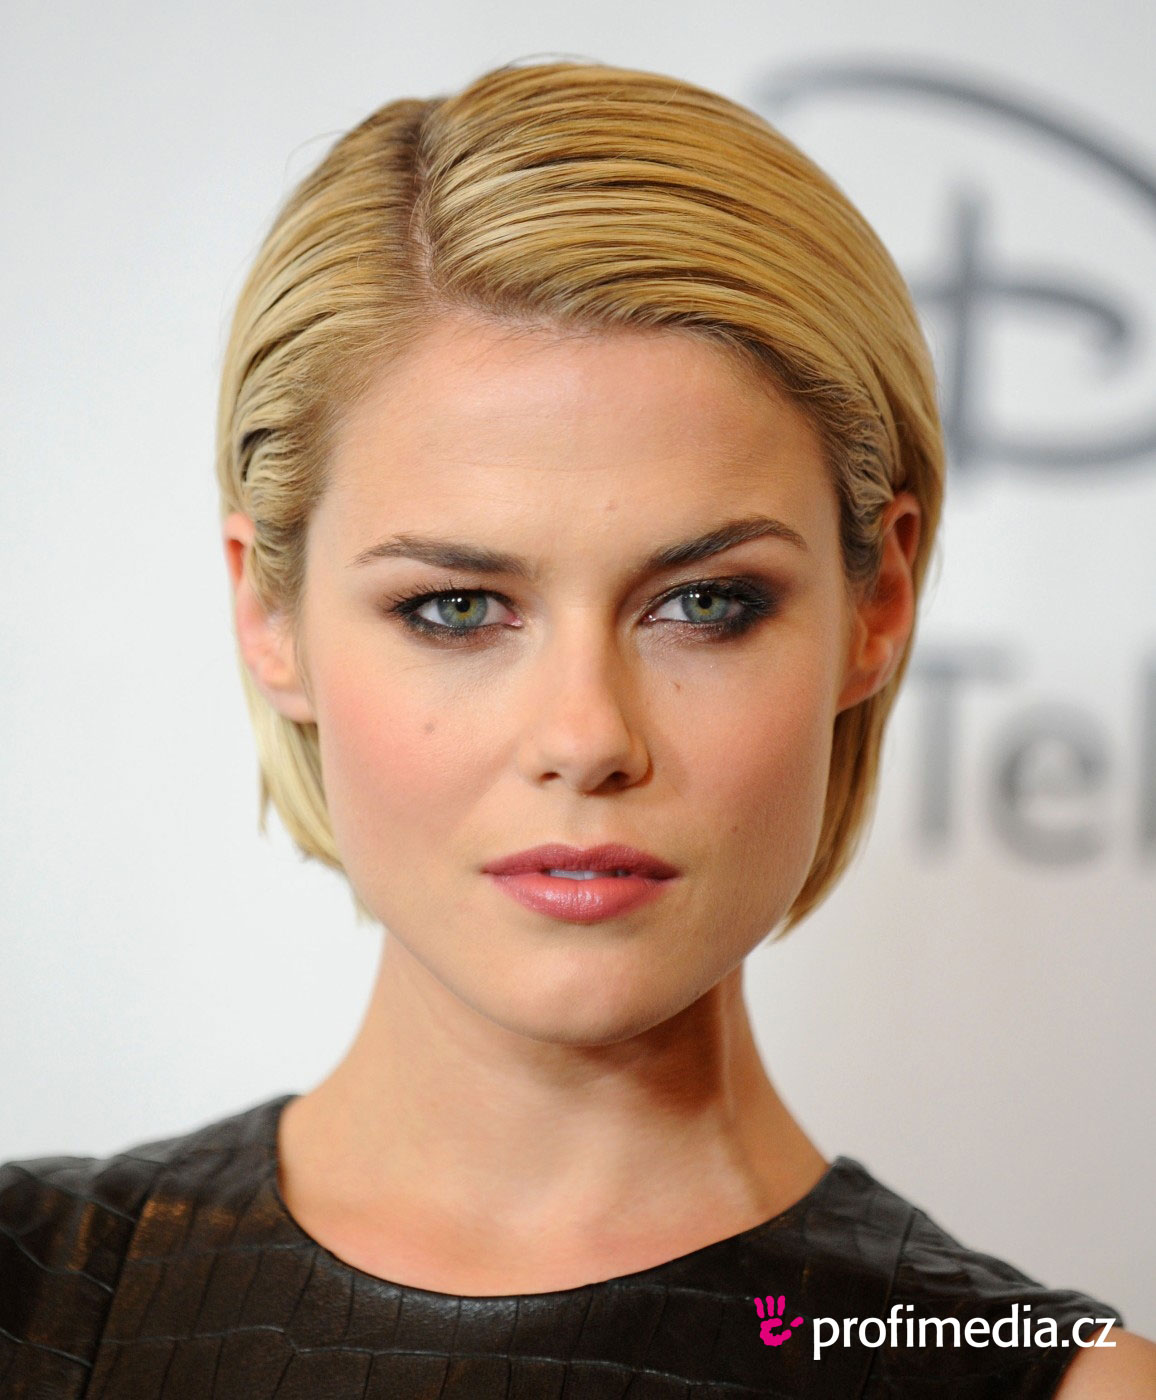 PHOTOS: Rachael Taylor's 10 Best Instagram Pics